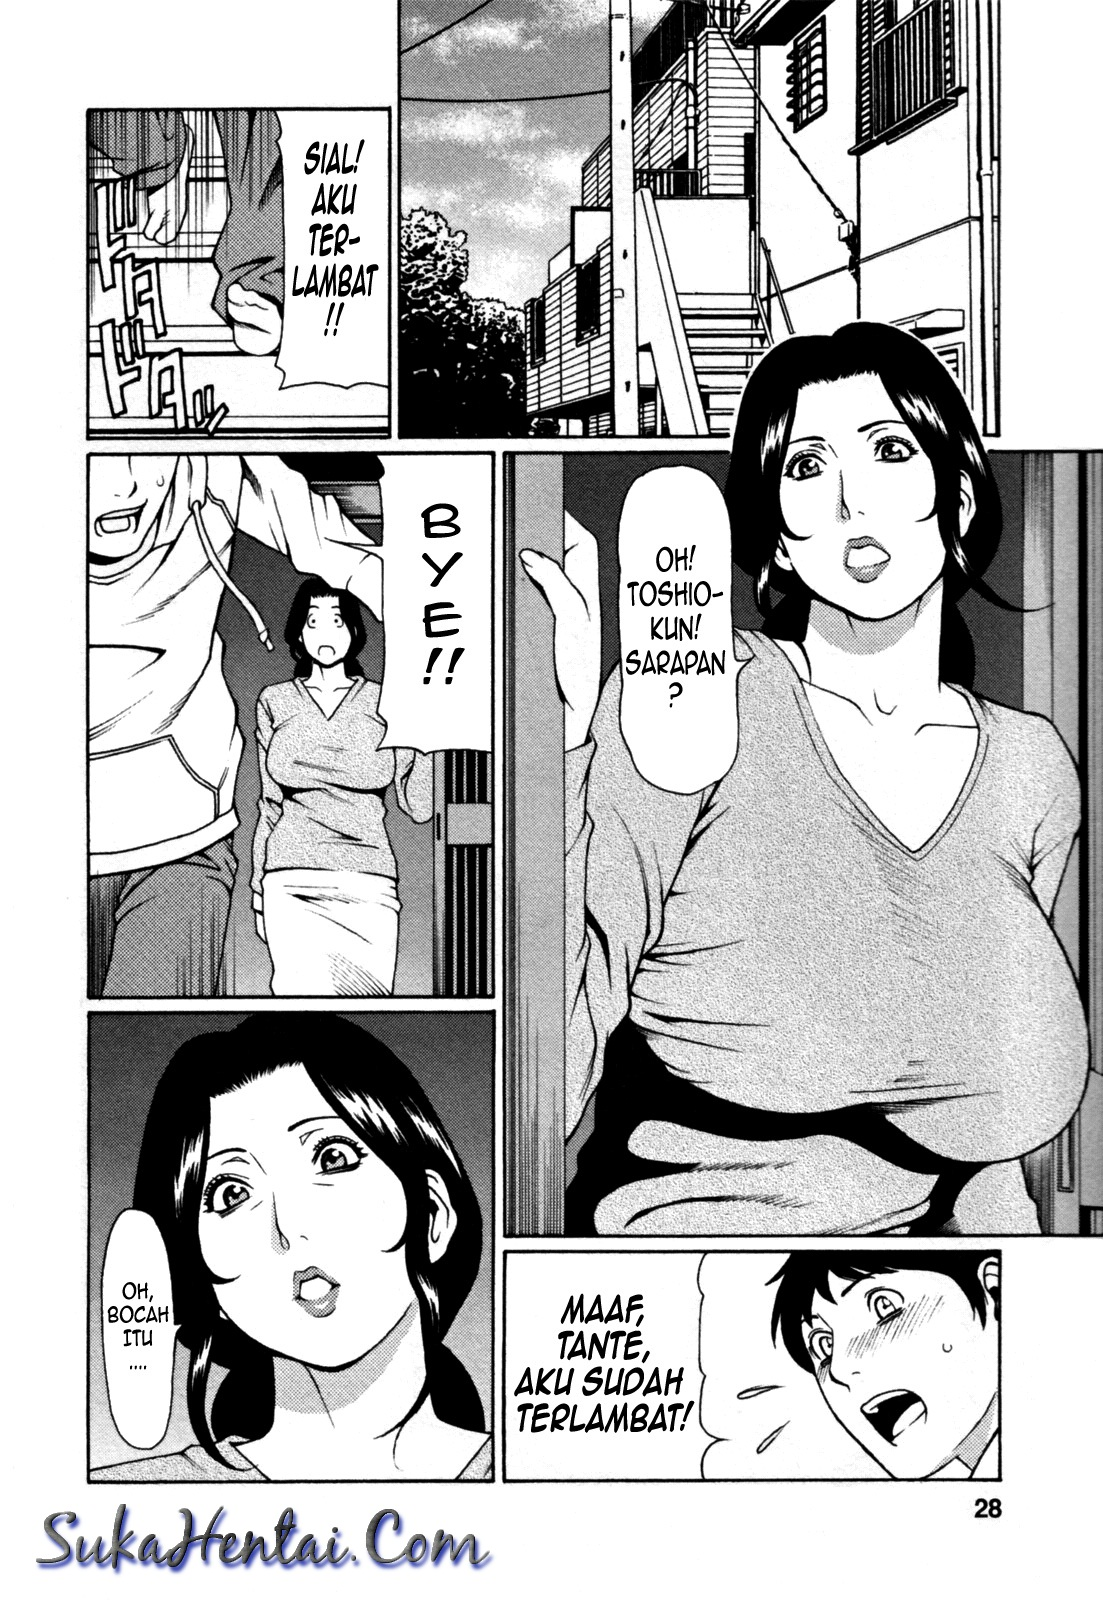 Komik hentai sex hot gimmick tante tubuh sintal big boob